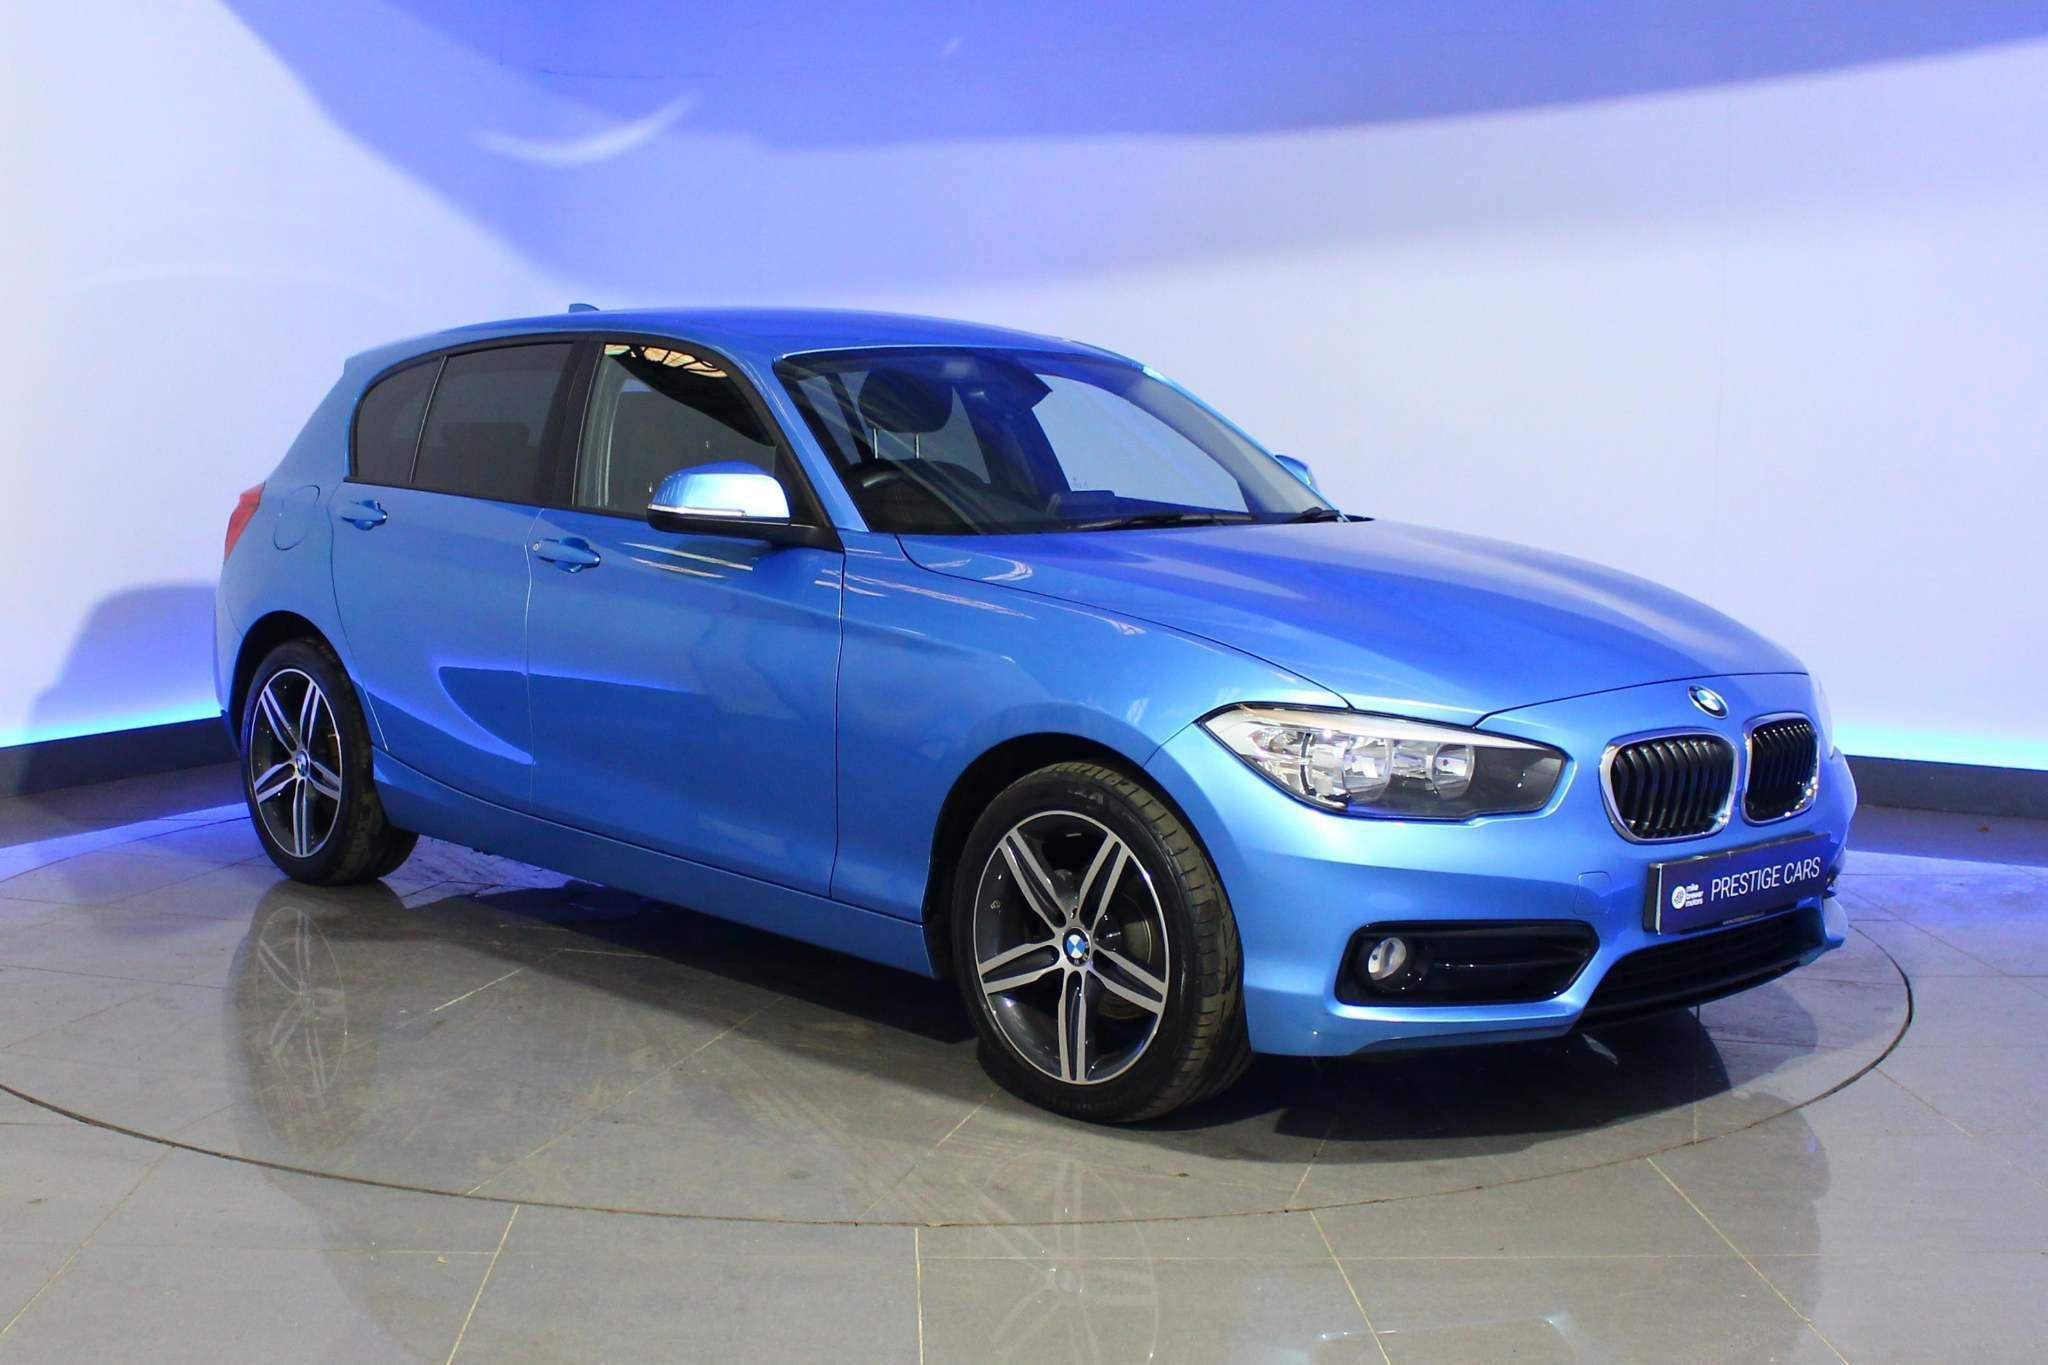 Used BMW 1 Series 1.5 118i Sport Sports Hatch (s/s) 5dr